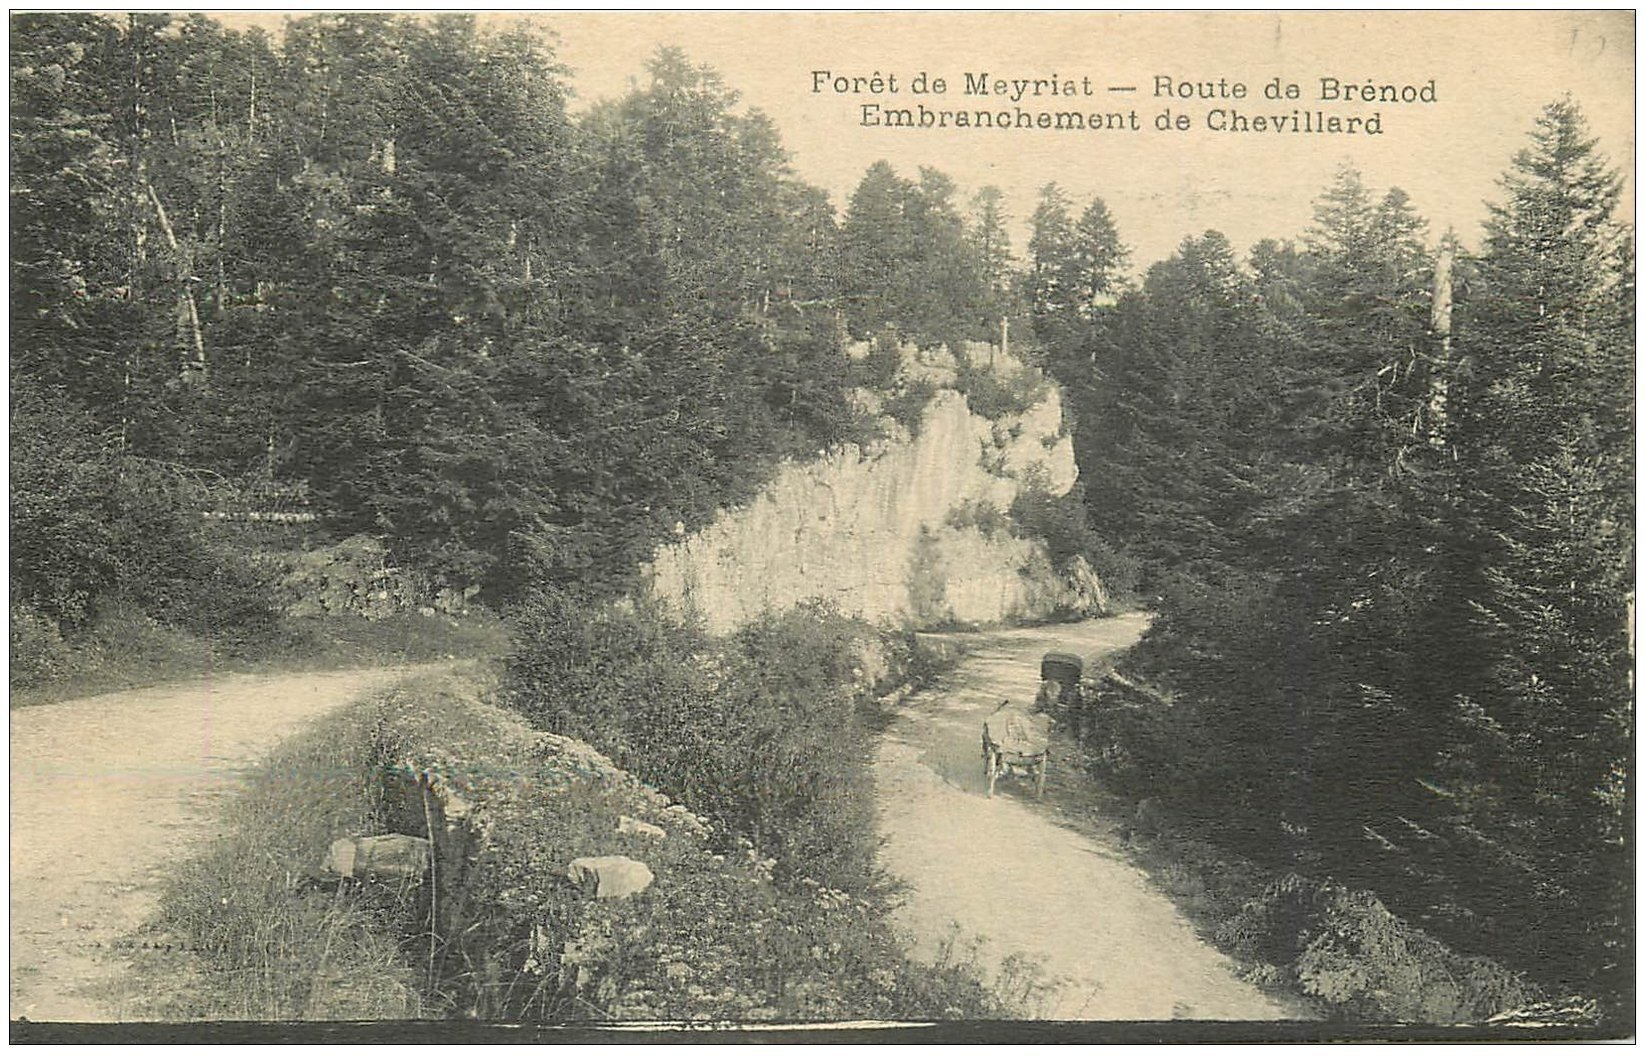 carte postale ancienne 01 Forêt de Meyriat. Route de Brénod. Embranchement Chevillard